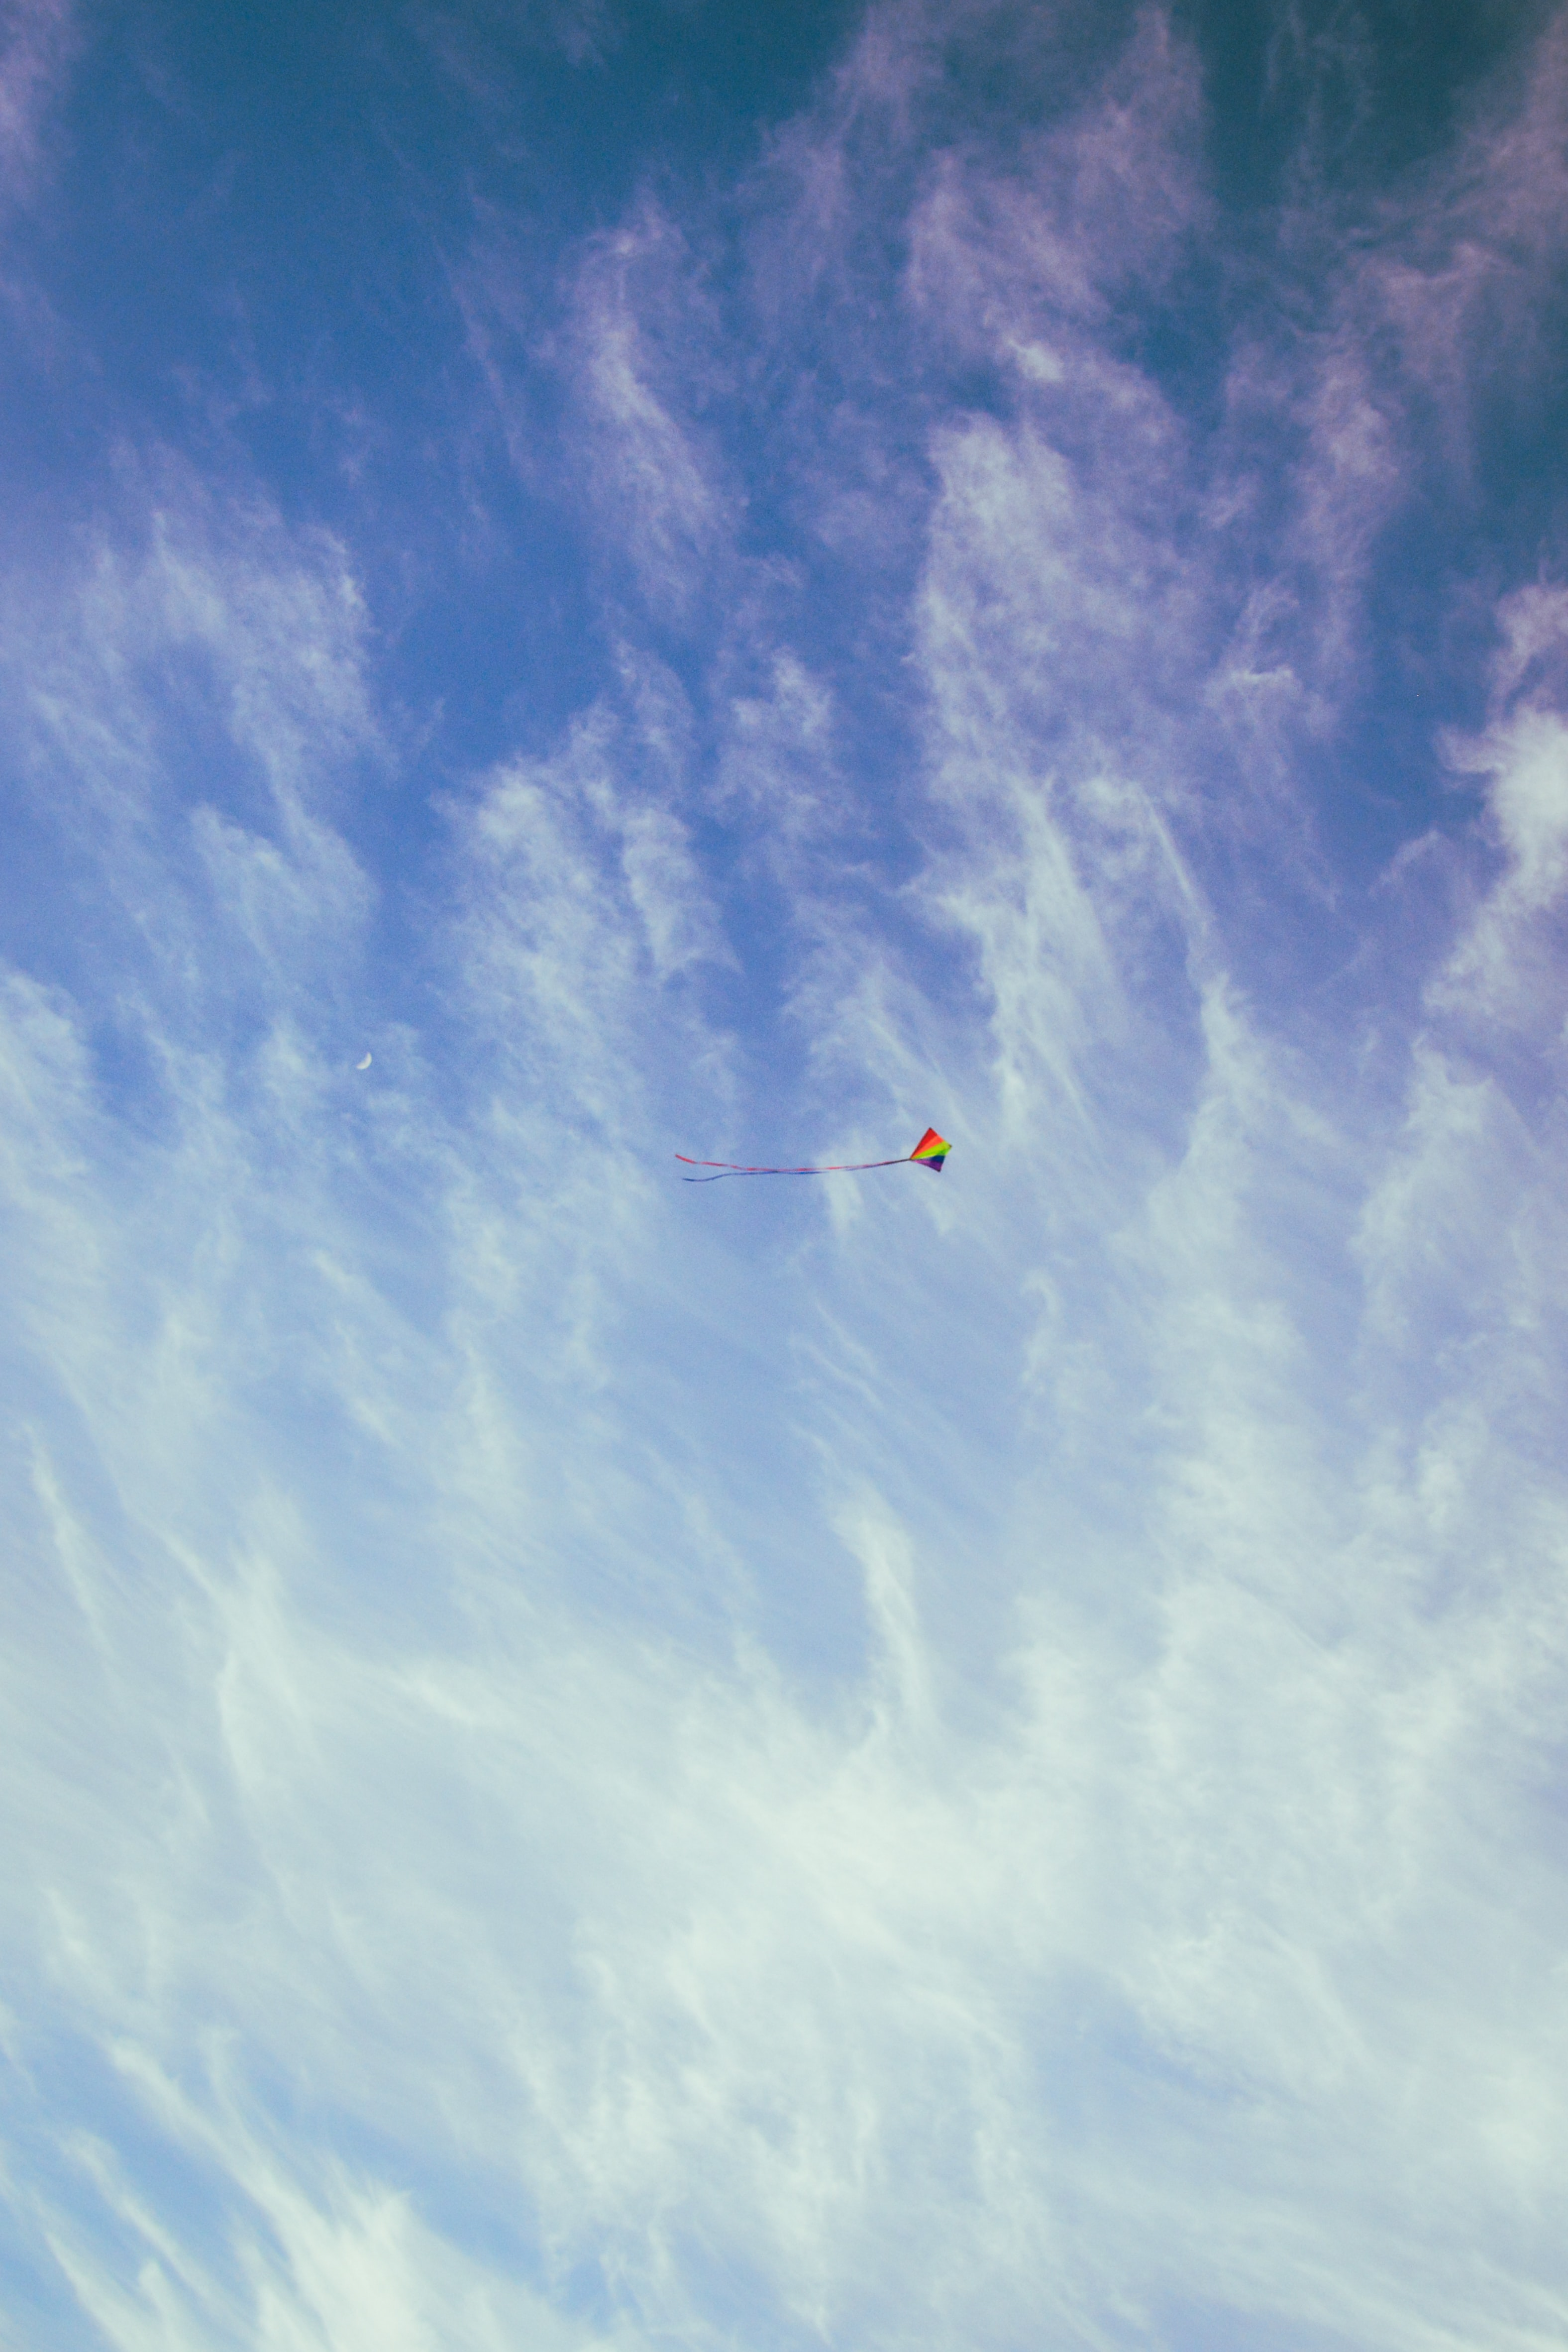 Colorful kite with tail in the sky with wispy clouds and the moon over Oxwich